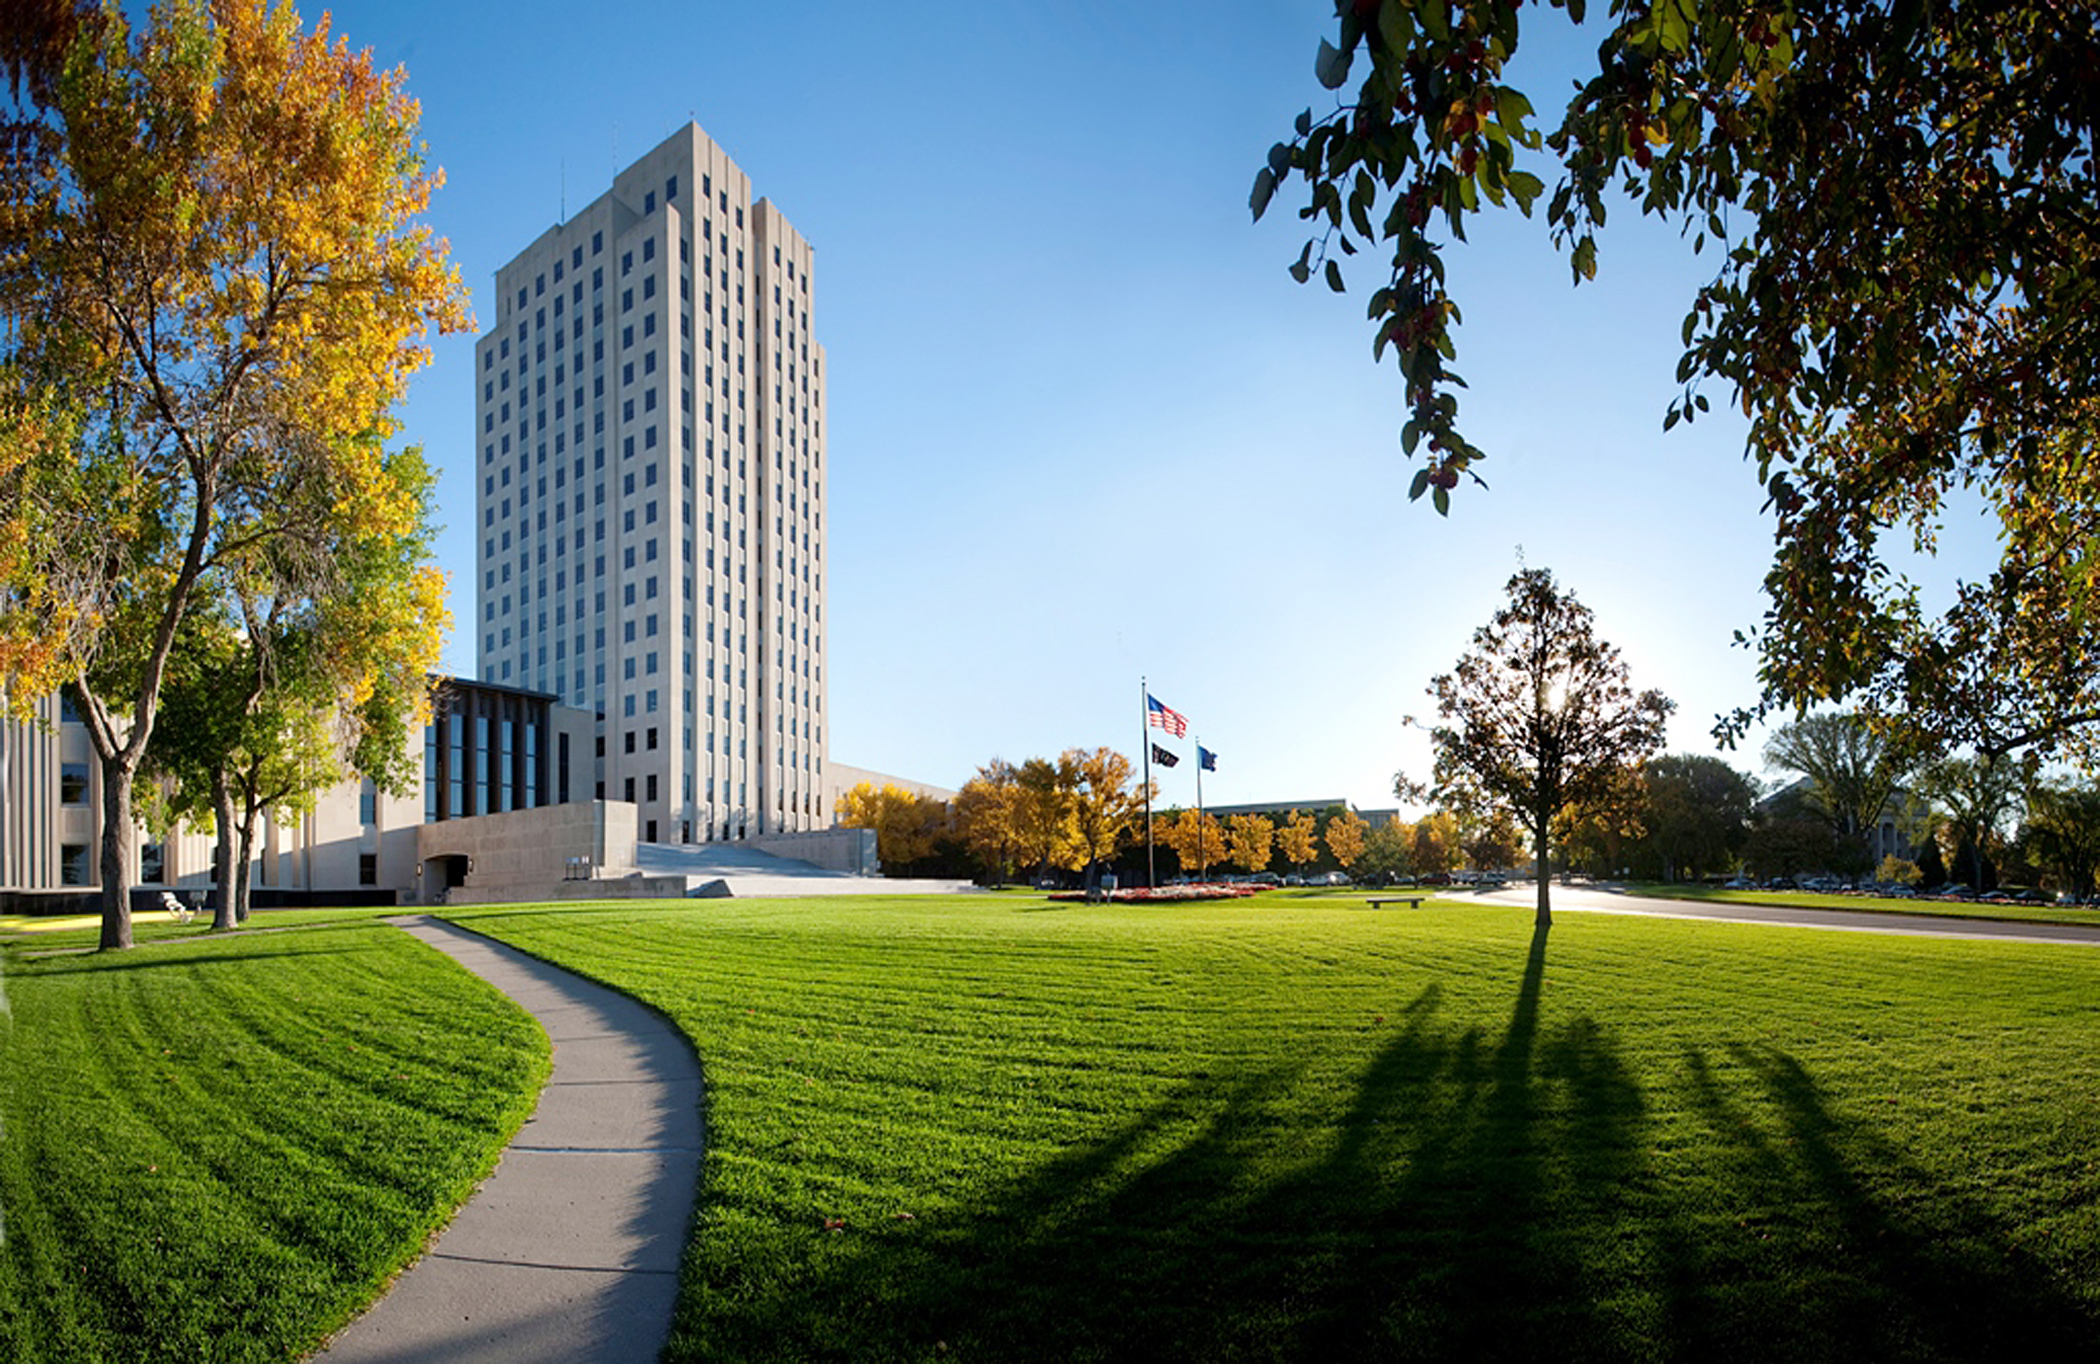 <strong>6. Bismarck, North Dakota:</strong> The capital of North Dakota is one of the country's fastest-growing small cities, with job growth is projected to be 11.4% over the next five years.